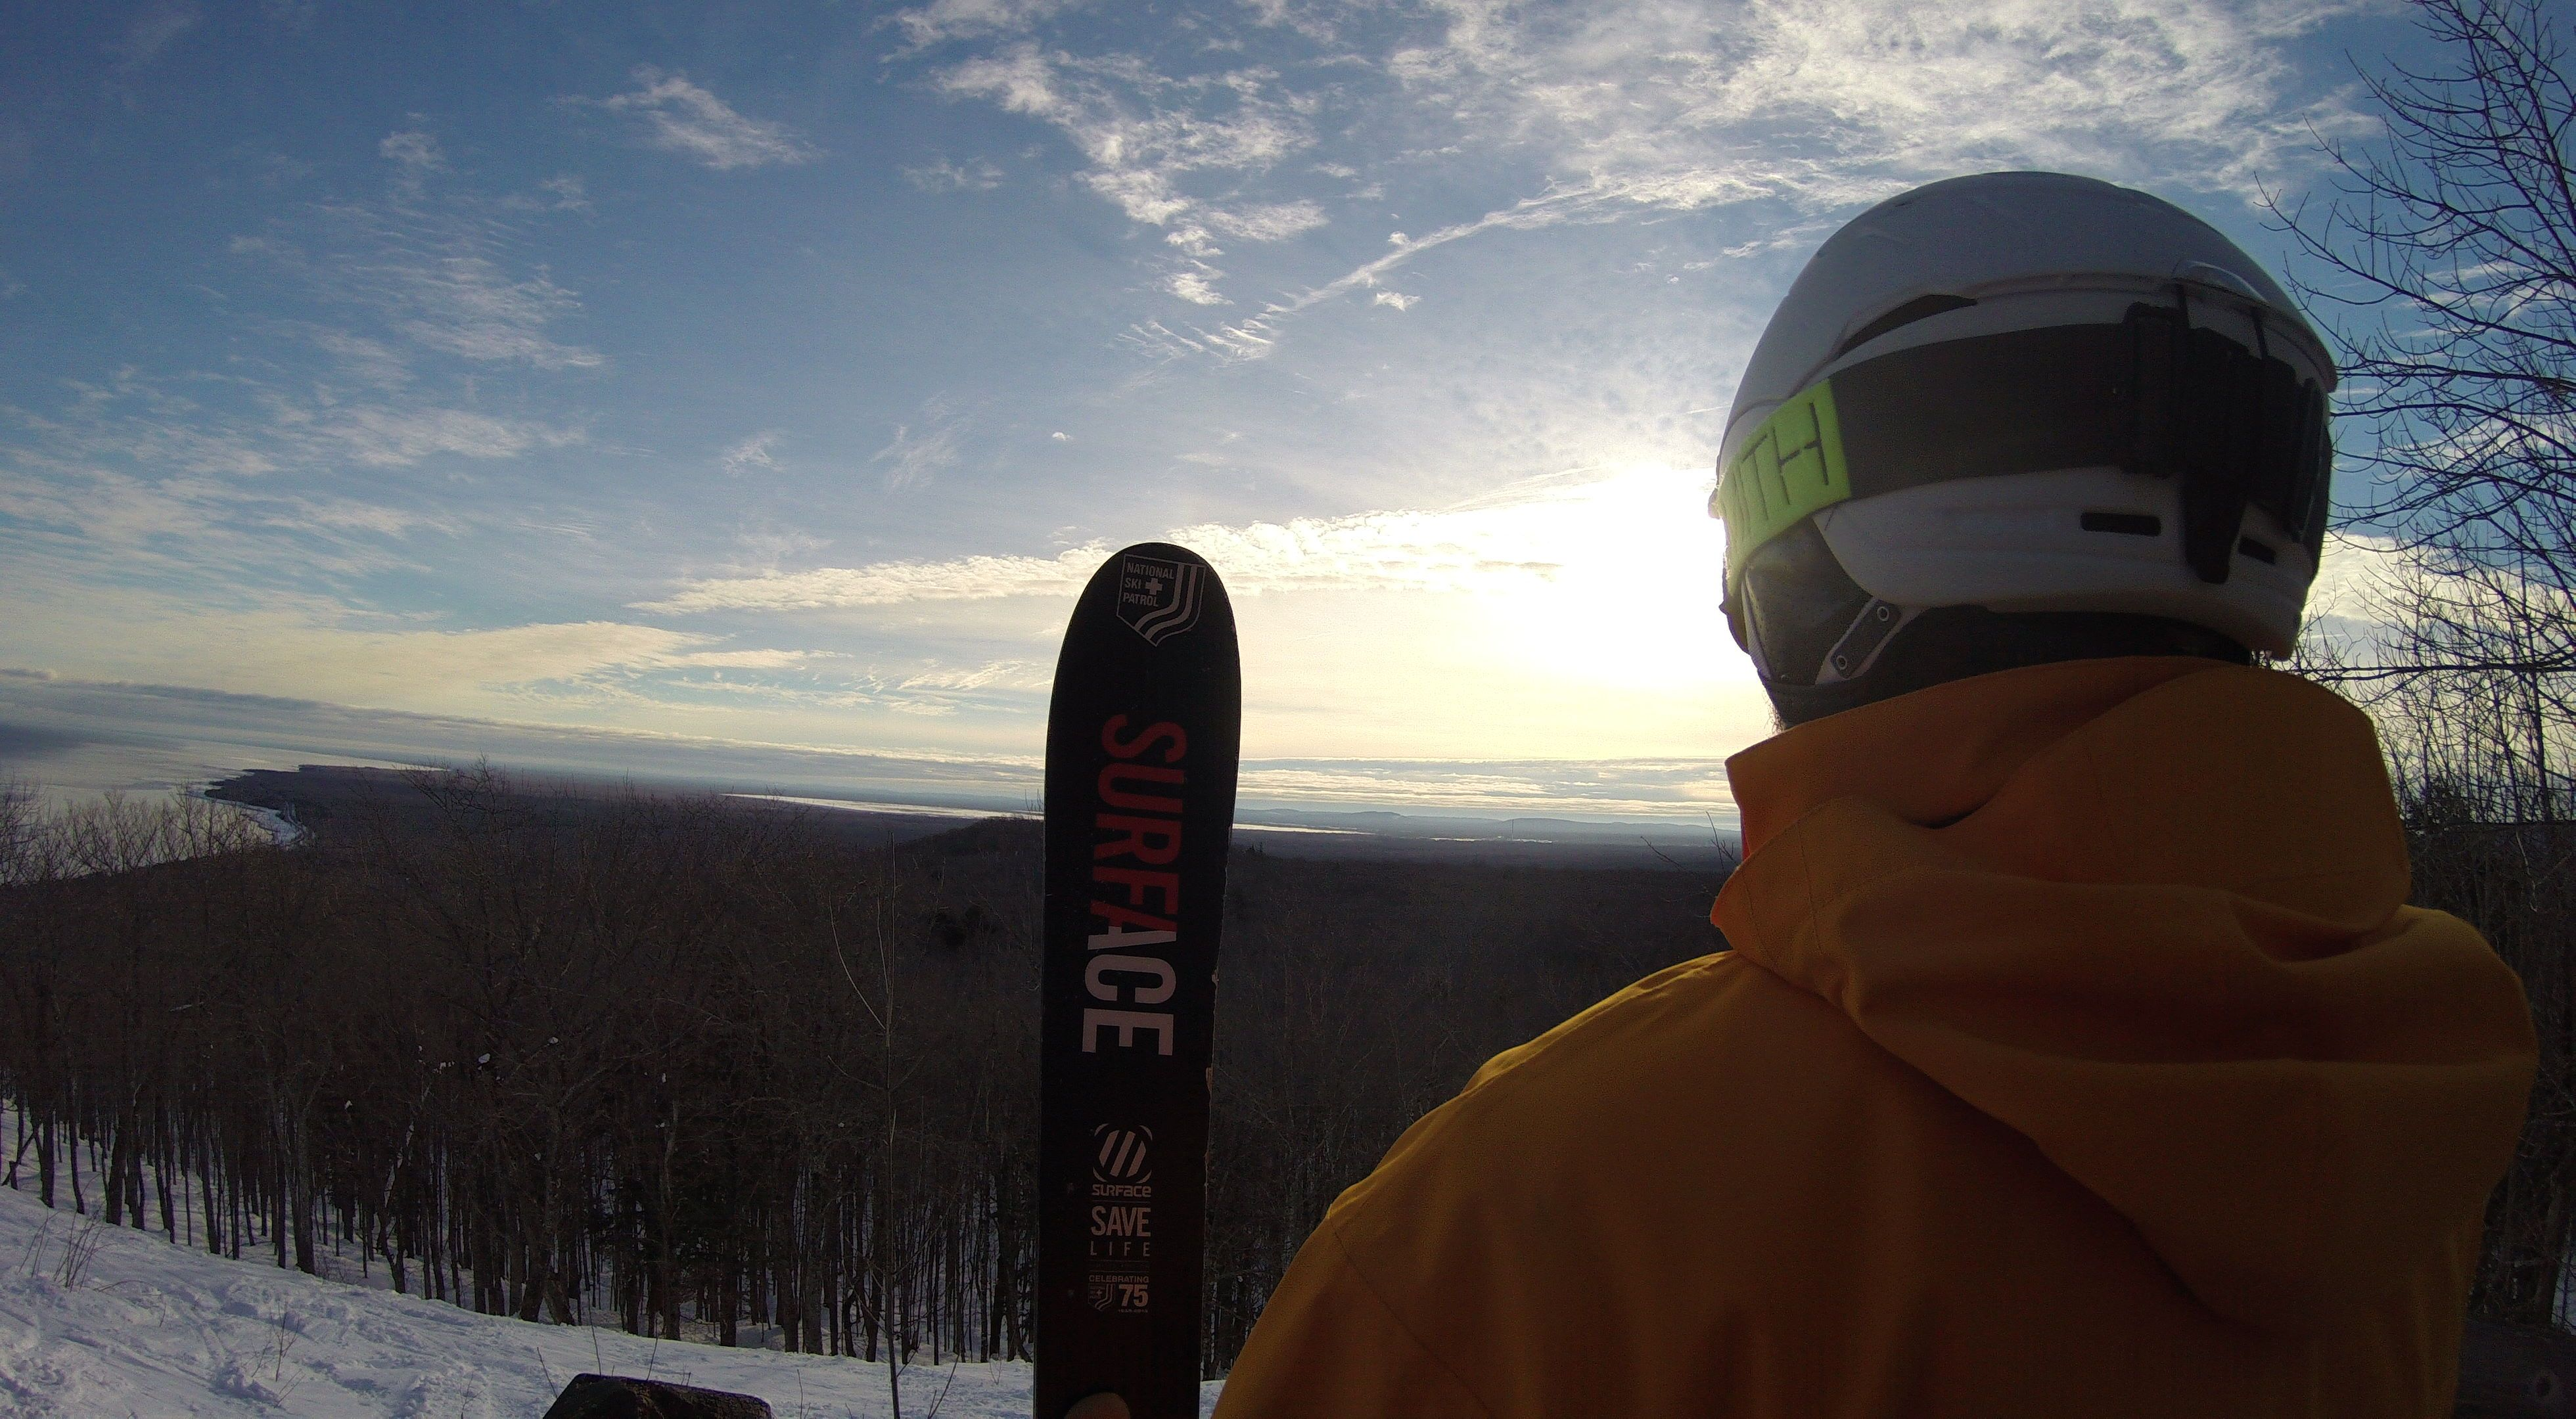 It's quite the view from the top of the hill at the Porcupine Mountain Ski Area...